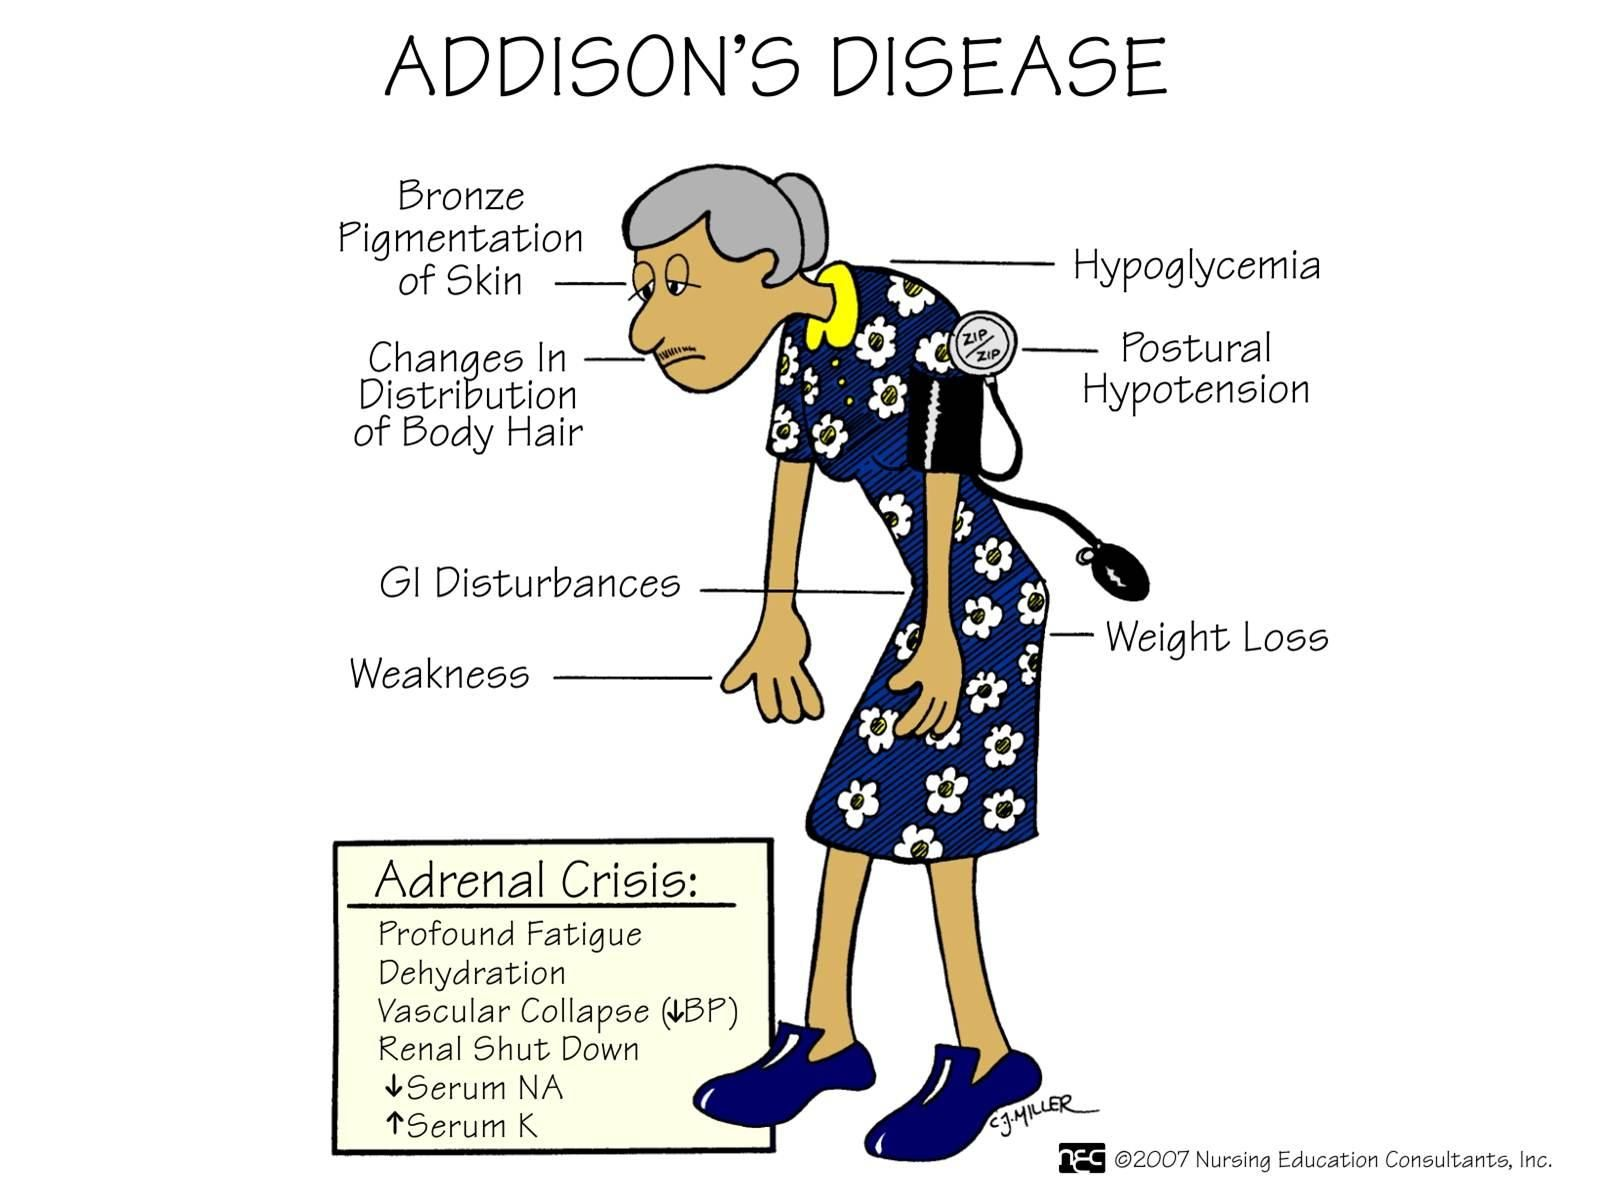 17 best images about addison s adrenal addison s addison s disease